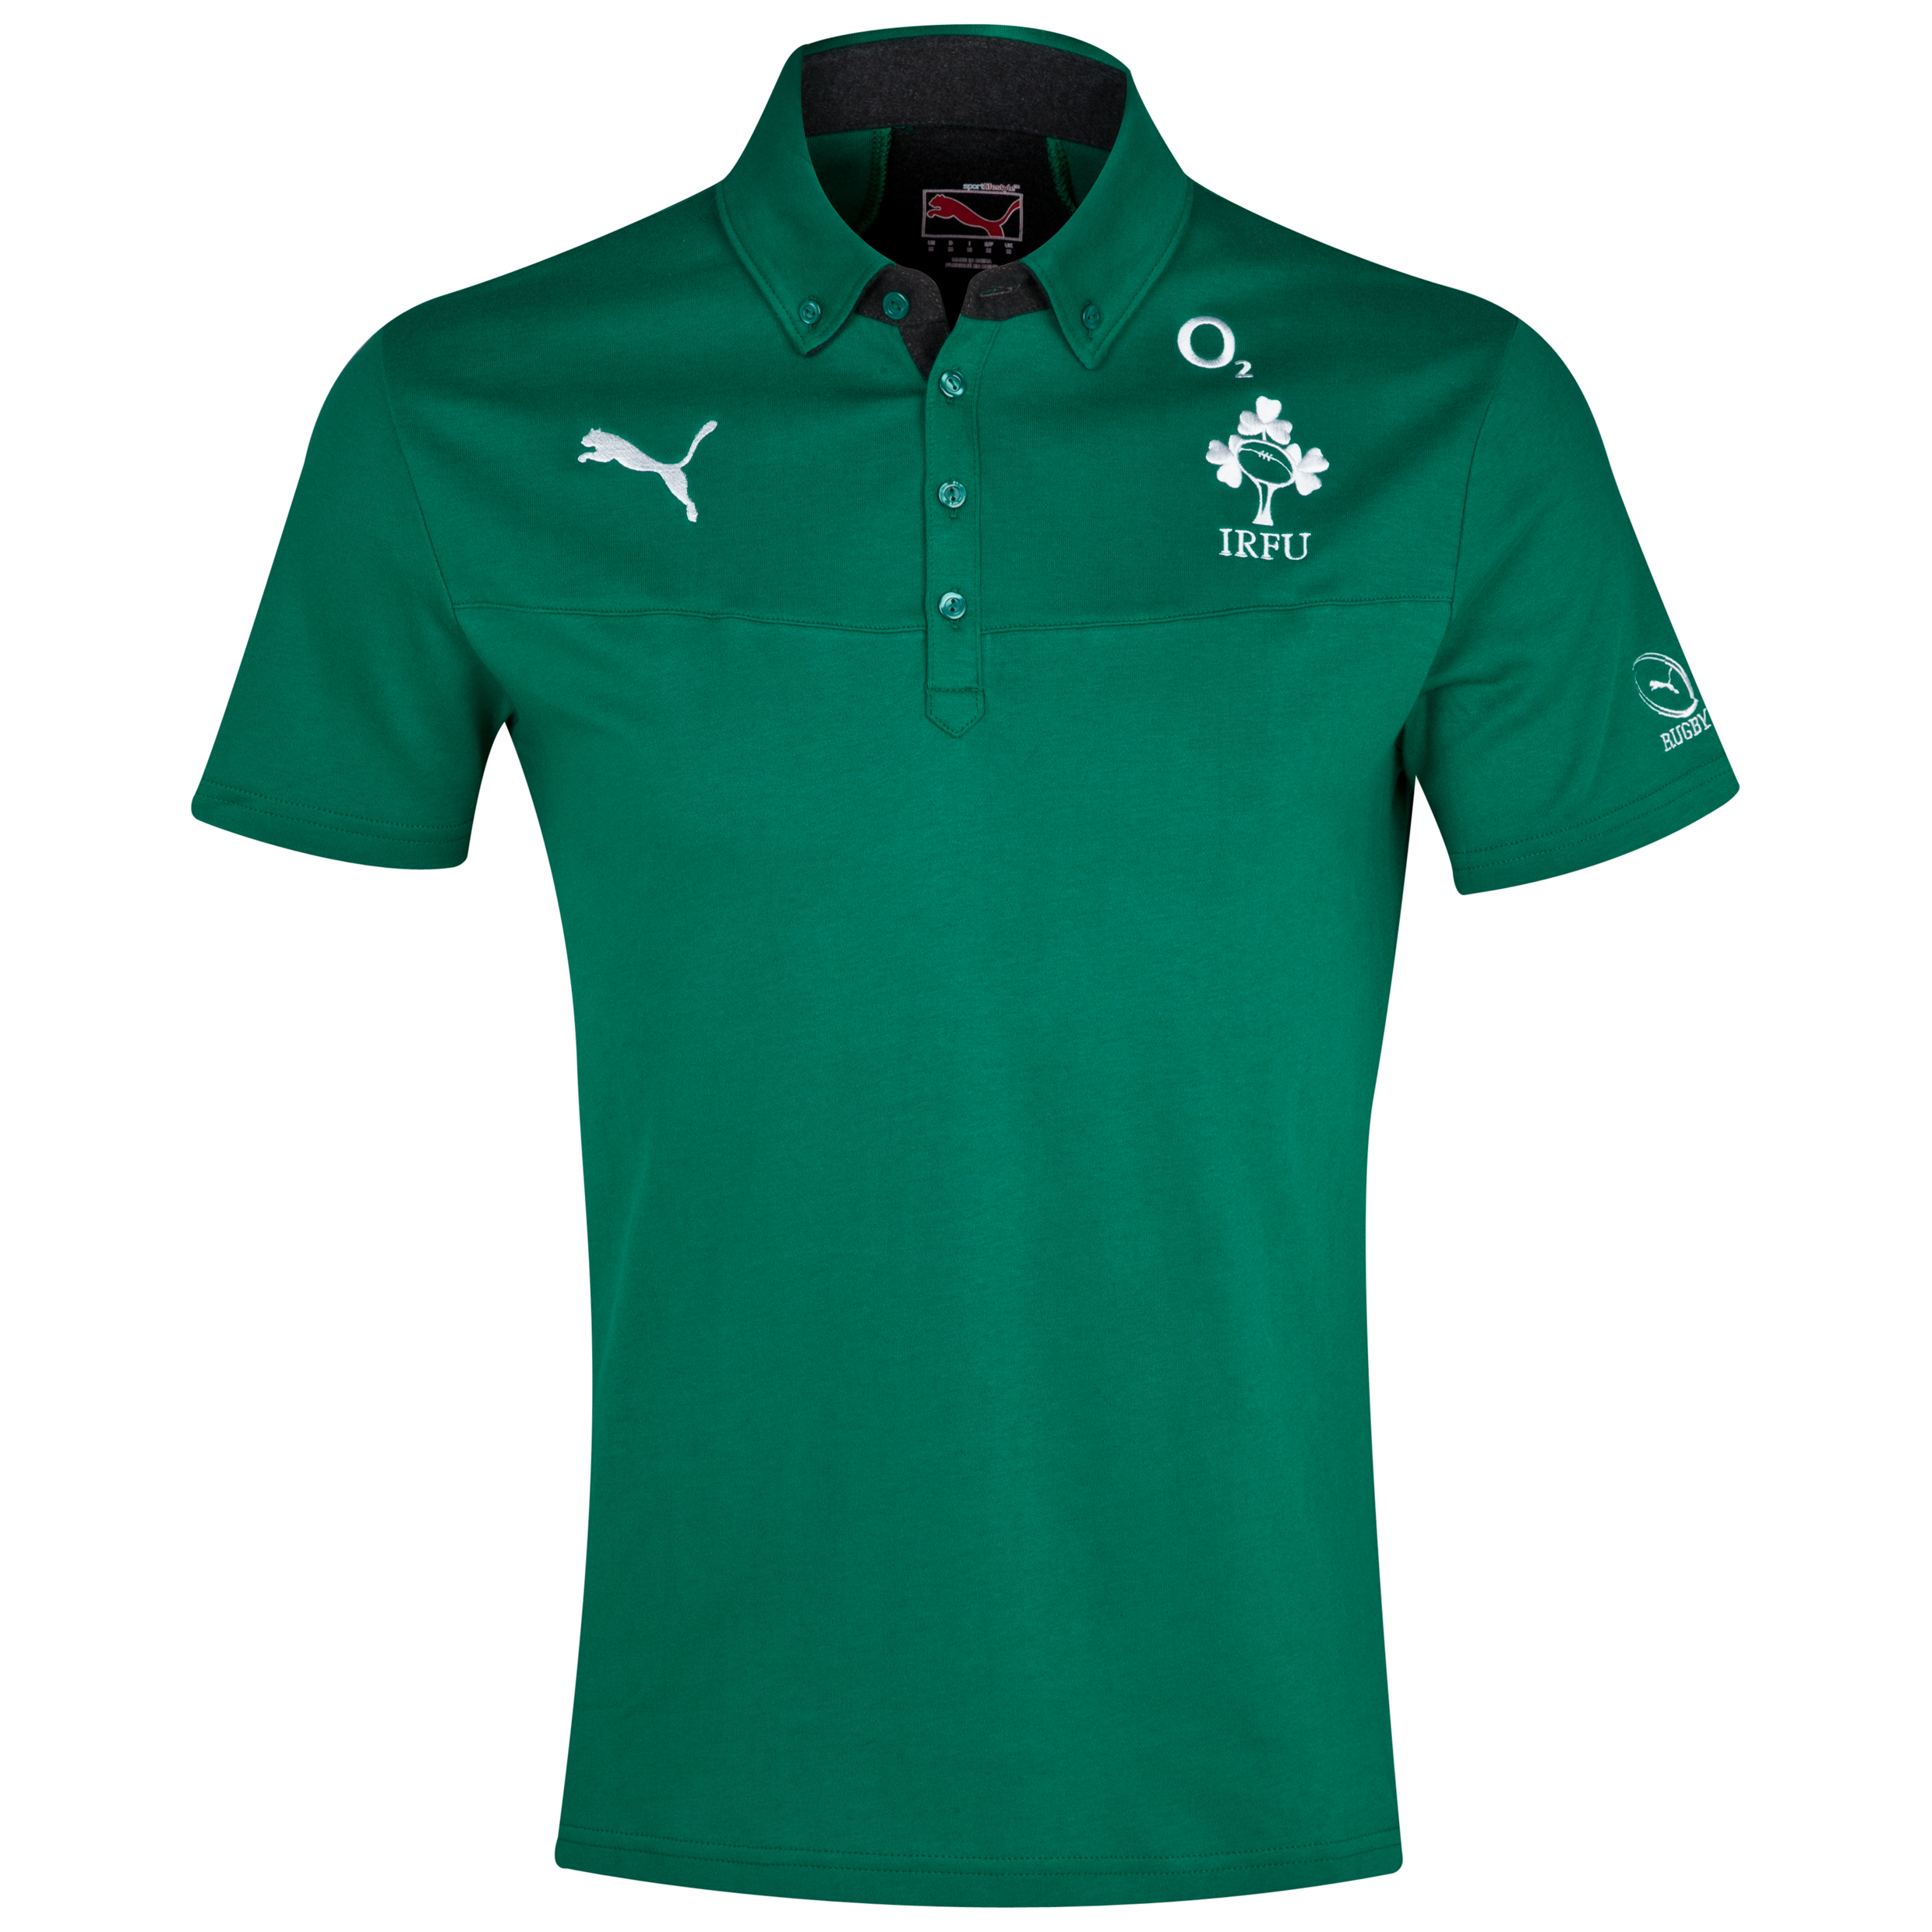 Ireland Polo - Power Green/Dark Grey Heather Green